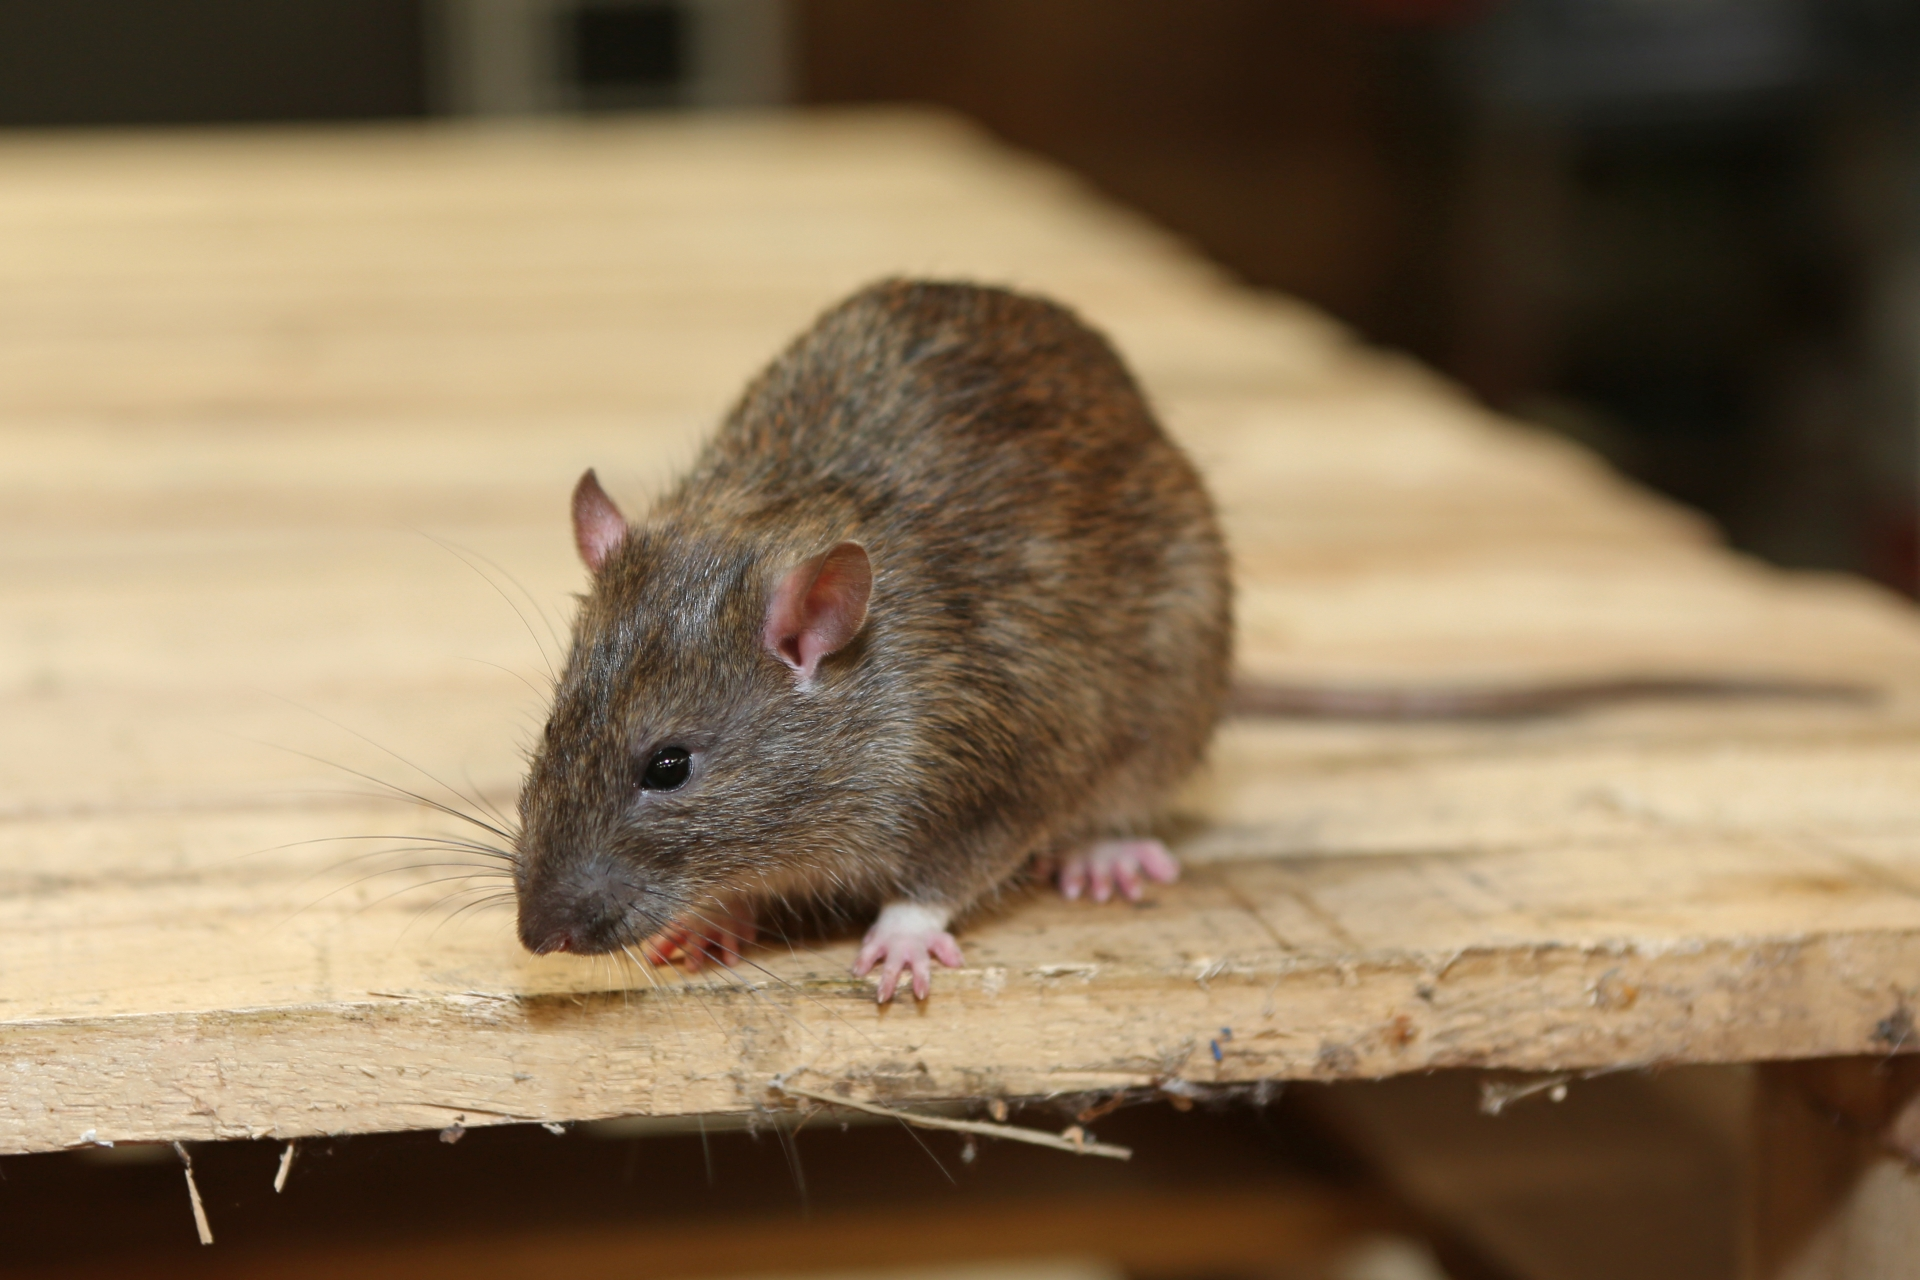 Rat Infestation, Pest Control in Swanley, Hextable, Crockenhill, BR8. Call Now 020 8166 9746